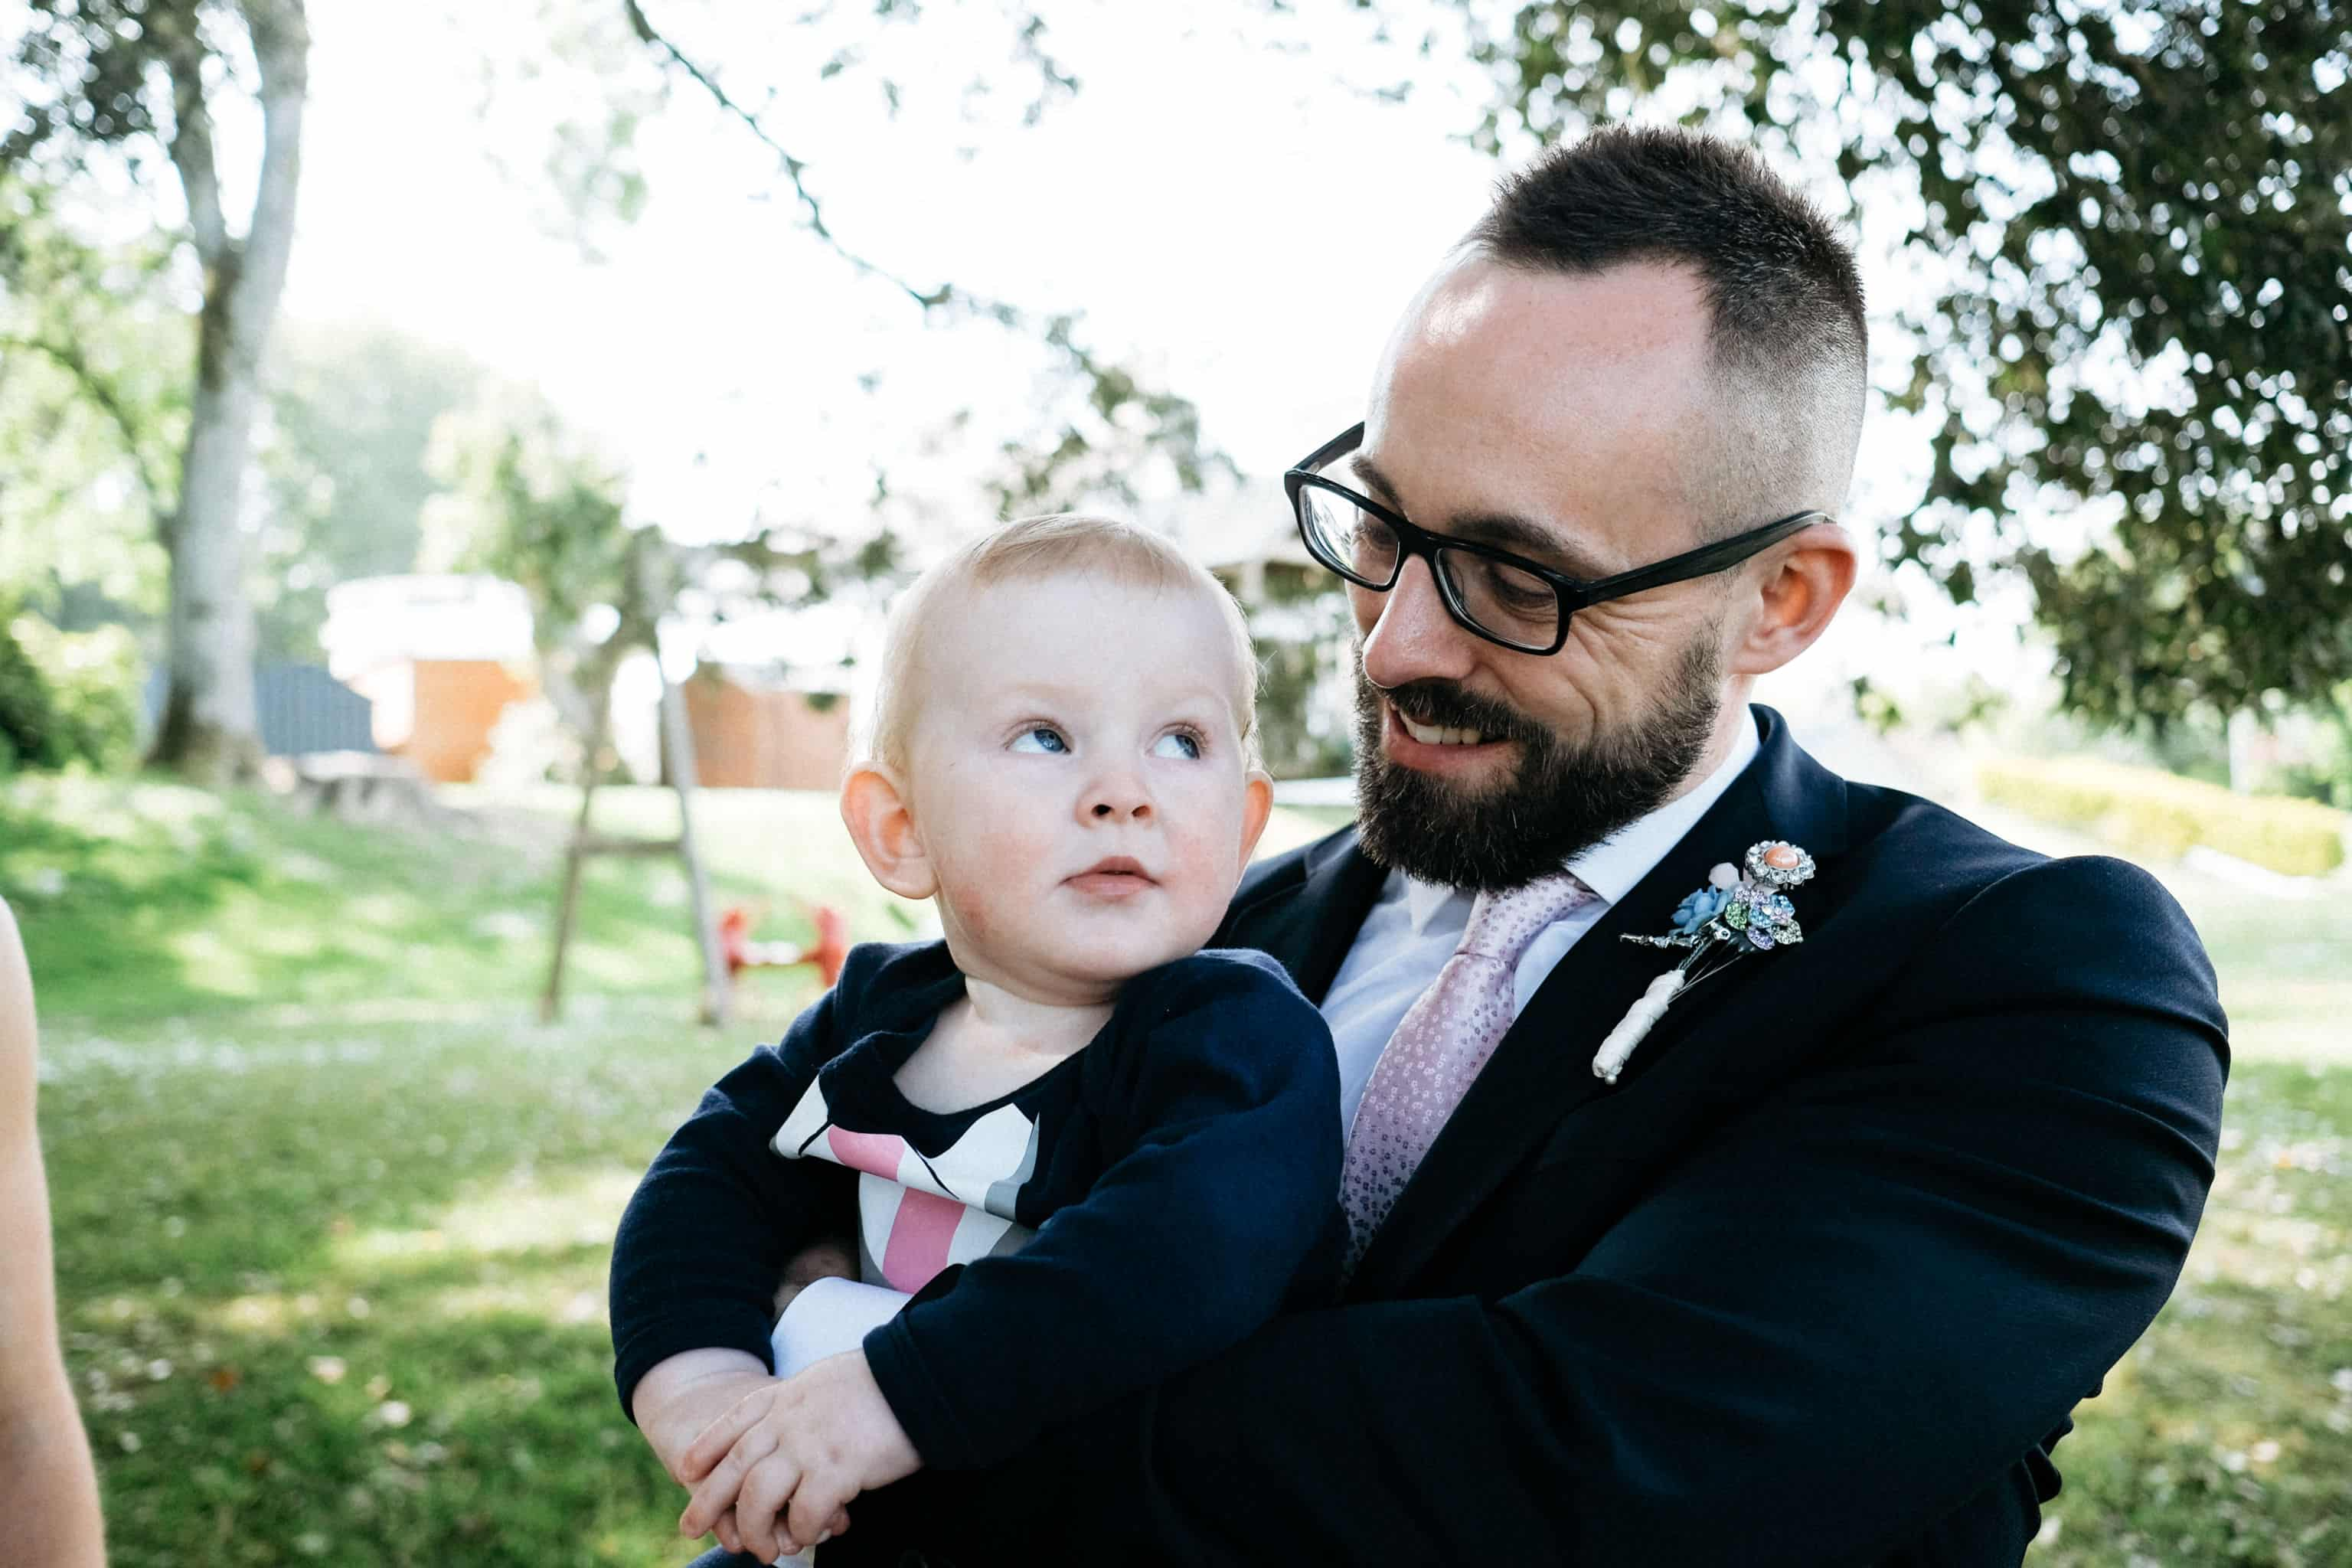 Father and son Wedding day